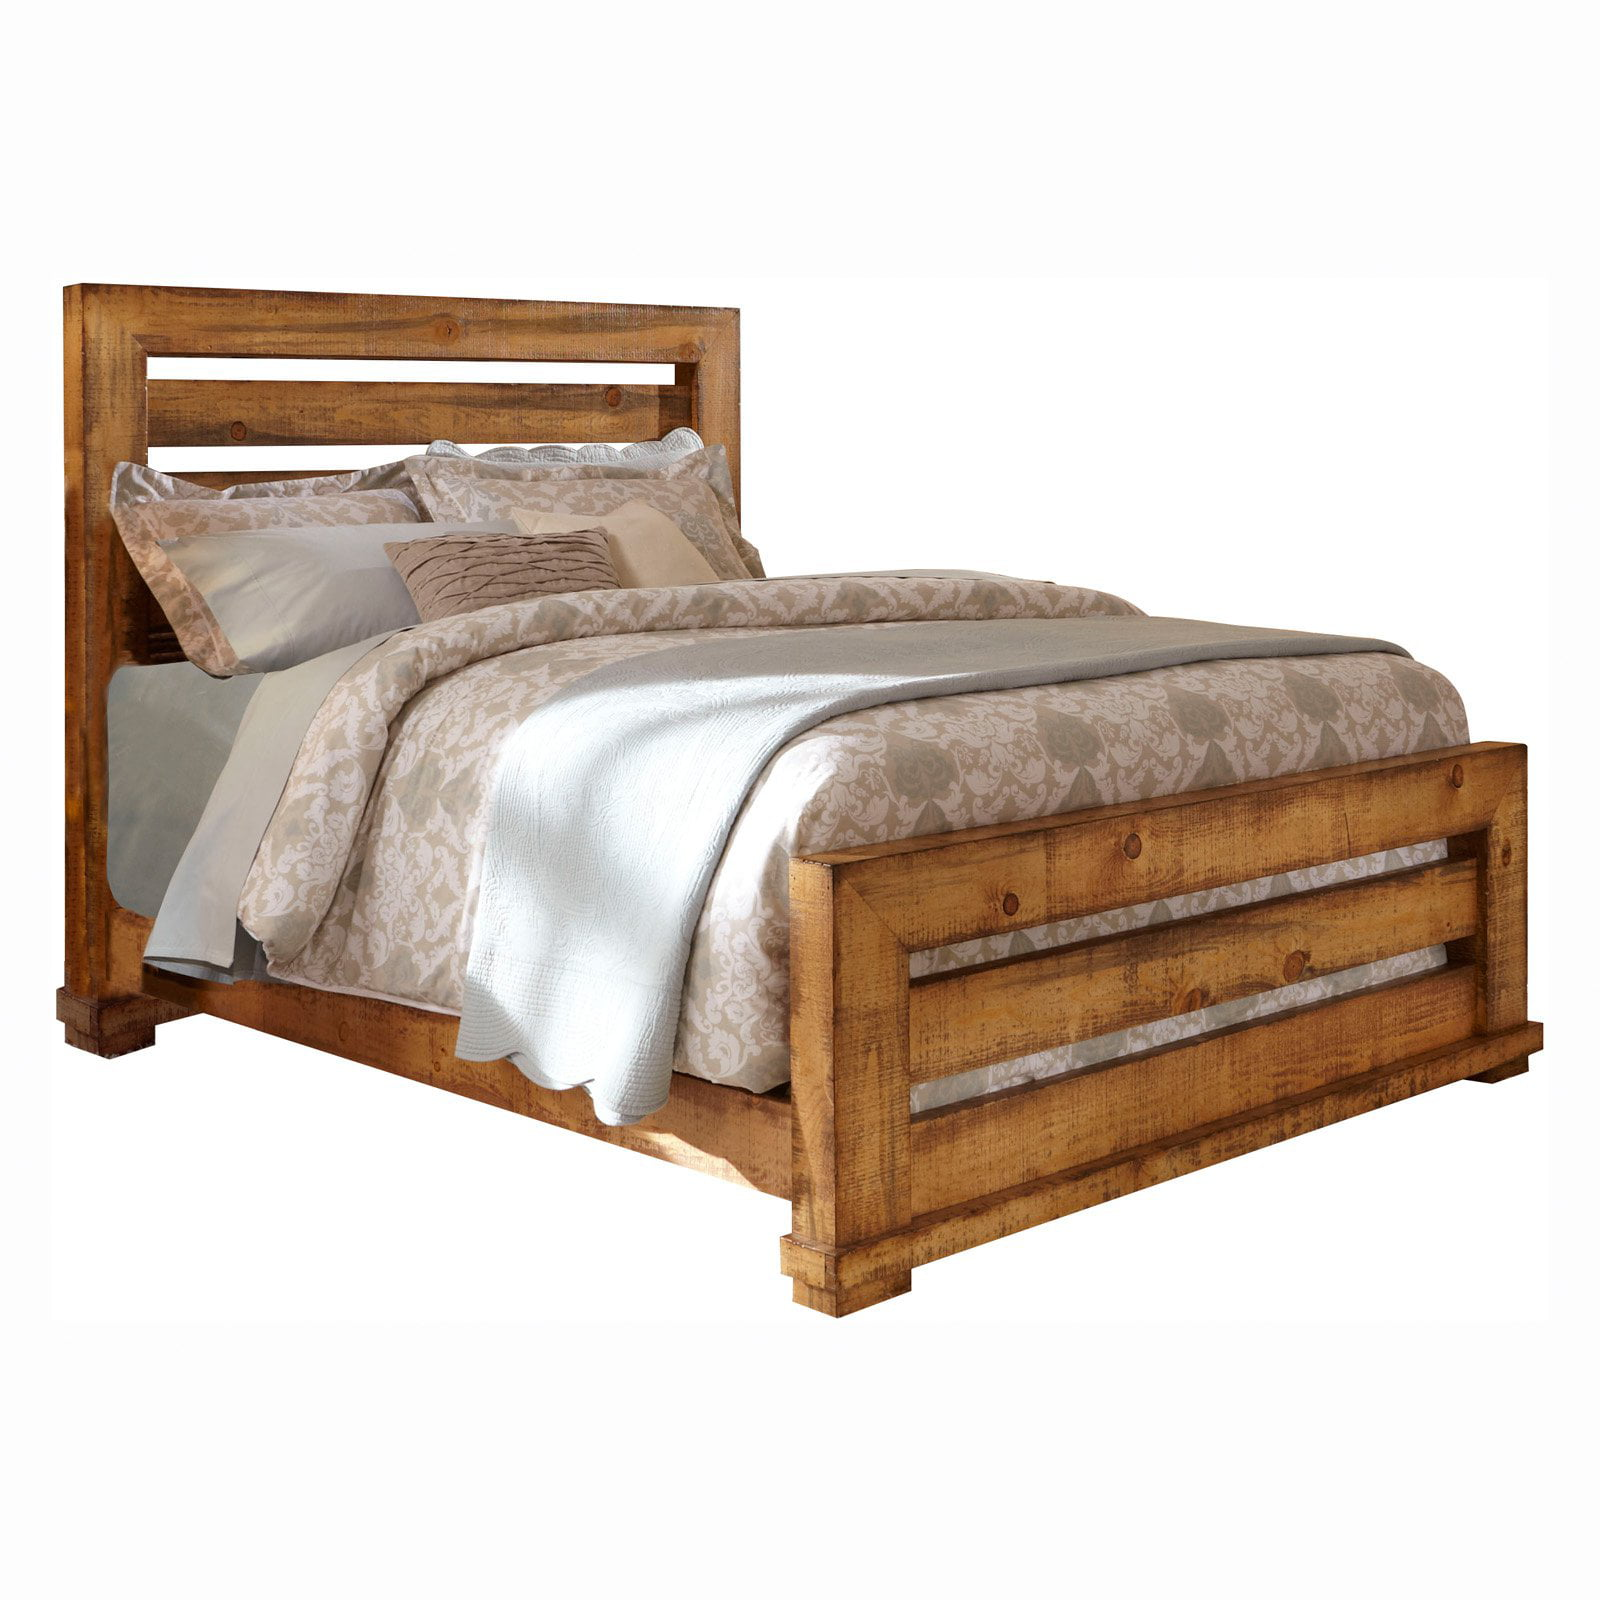 Progressive Furniture Willow Slat Panel Bed   Walmart.com